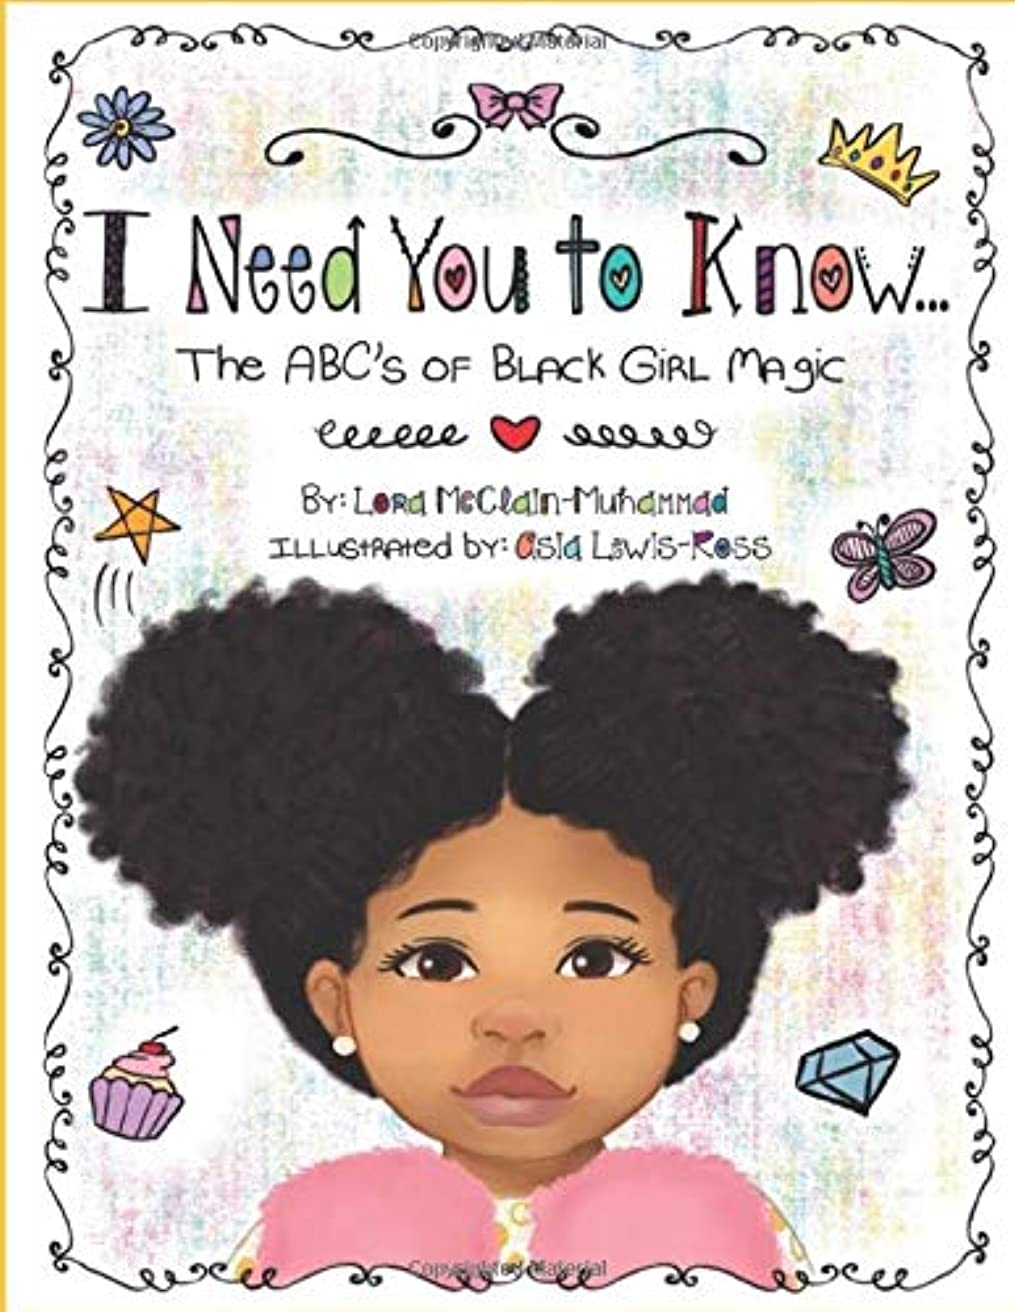 シールド抑圧する定義I Need You to Know: The ABC's of Black Girl Magic